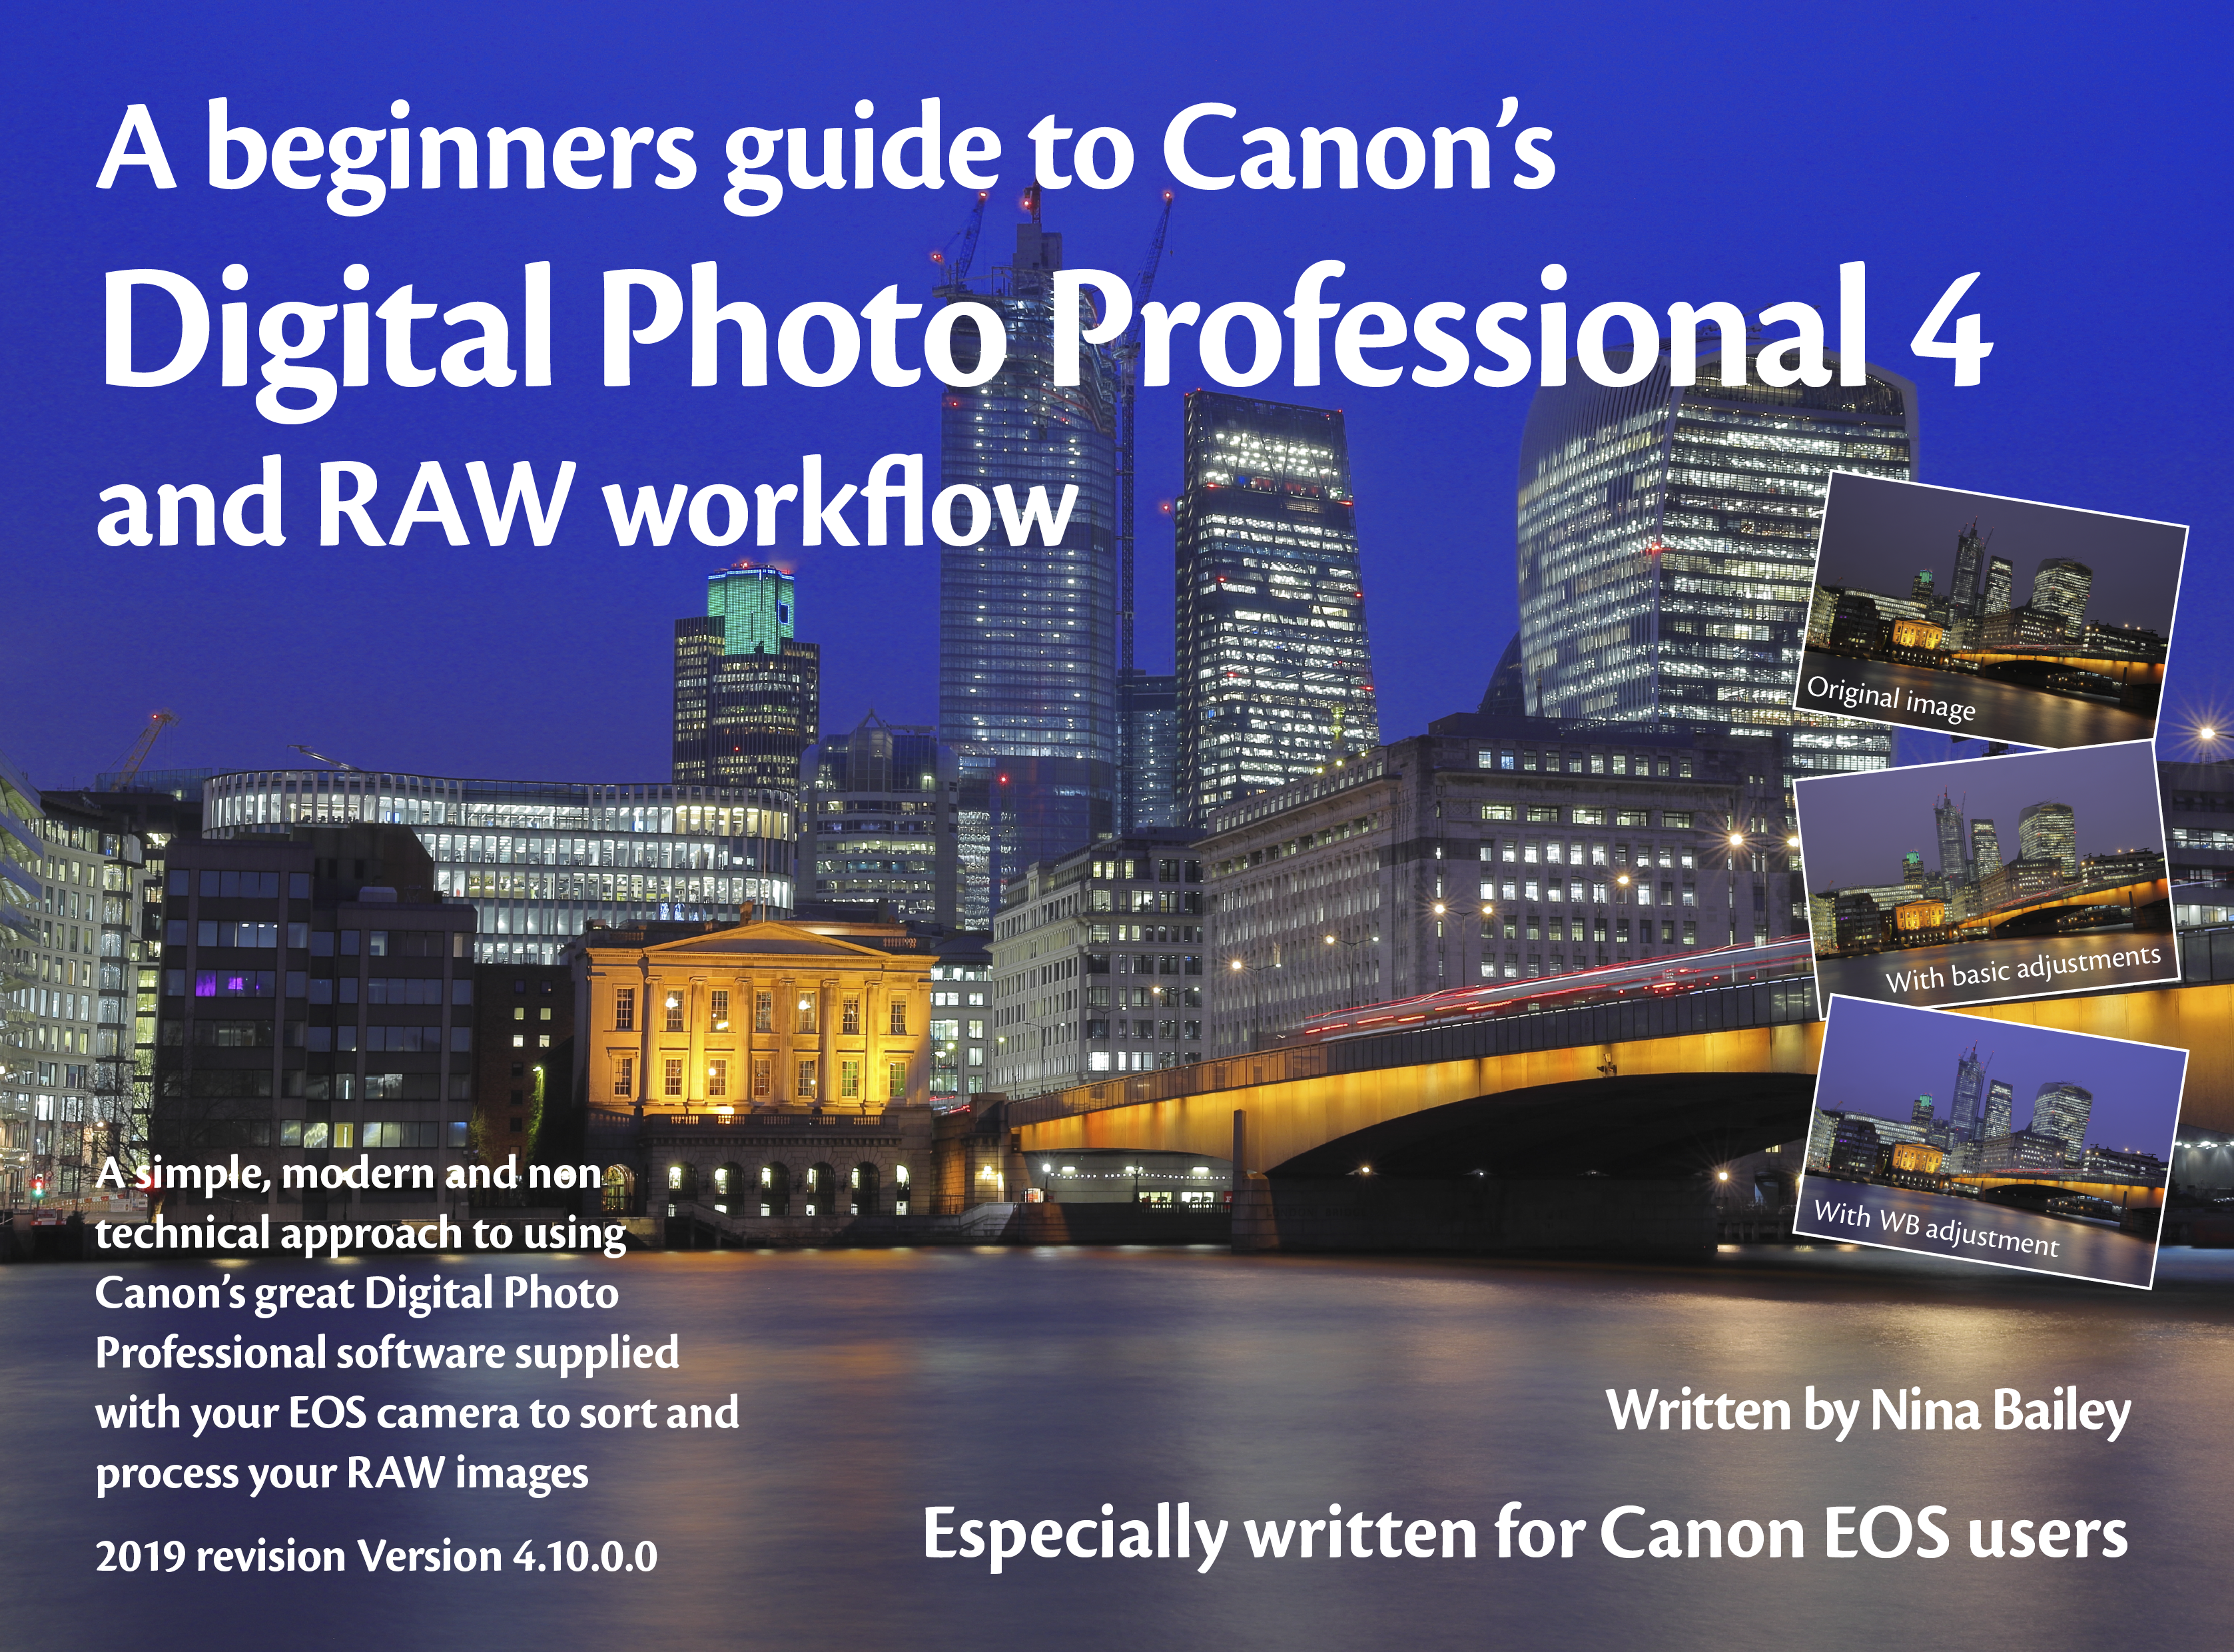 A beginners guide to Digital Photo Professional - Version